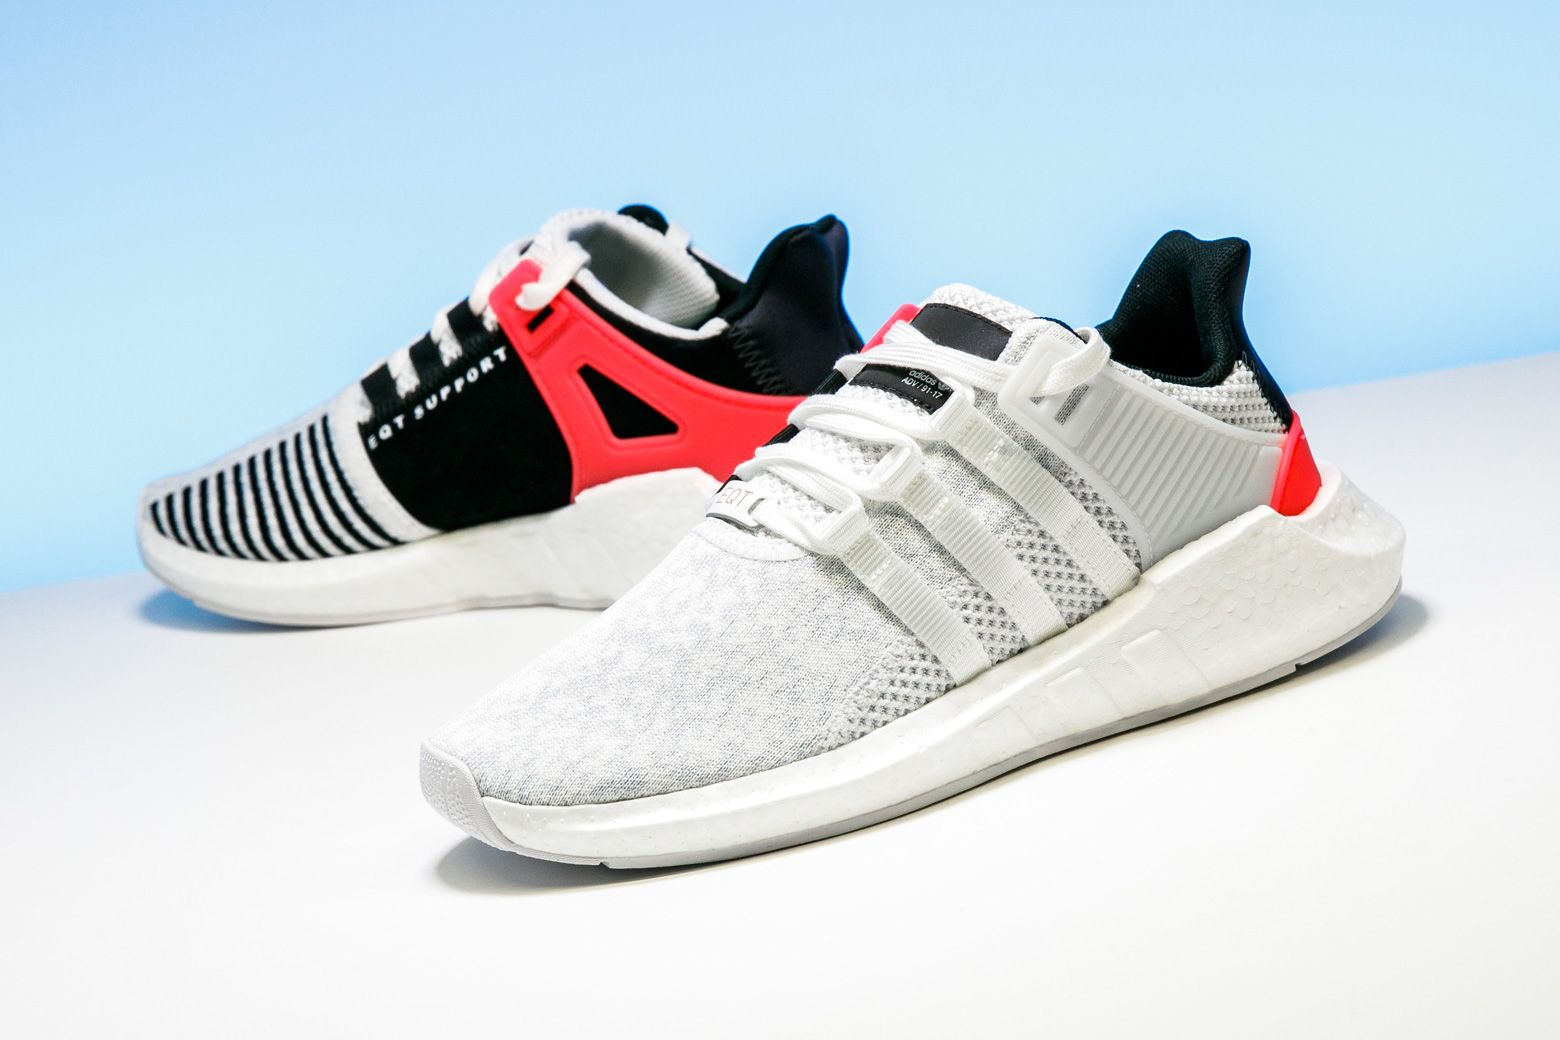 on sale 6b679 f07ba The combo of form and function make the adidas EQT Support 9317 an  essential